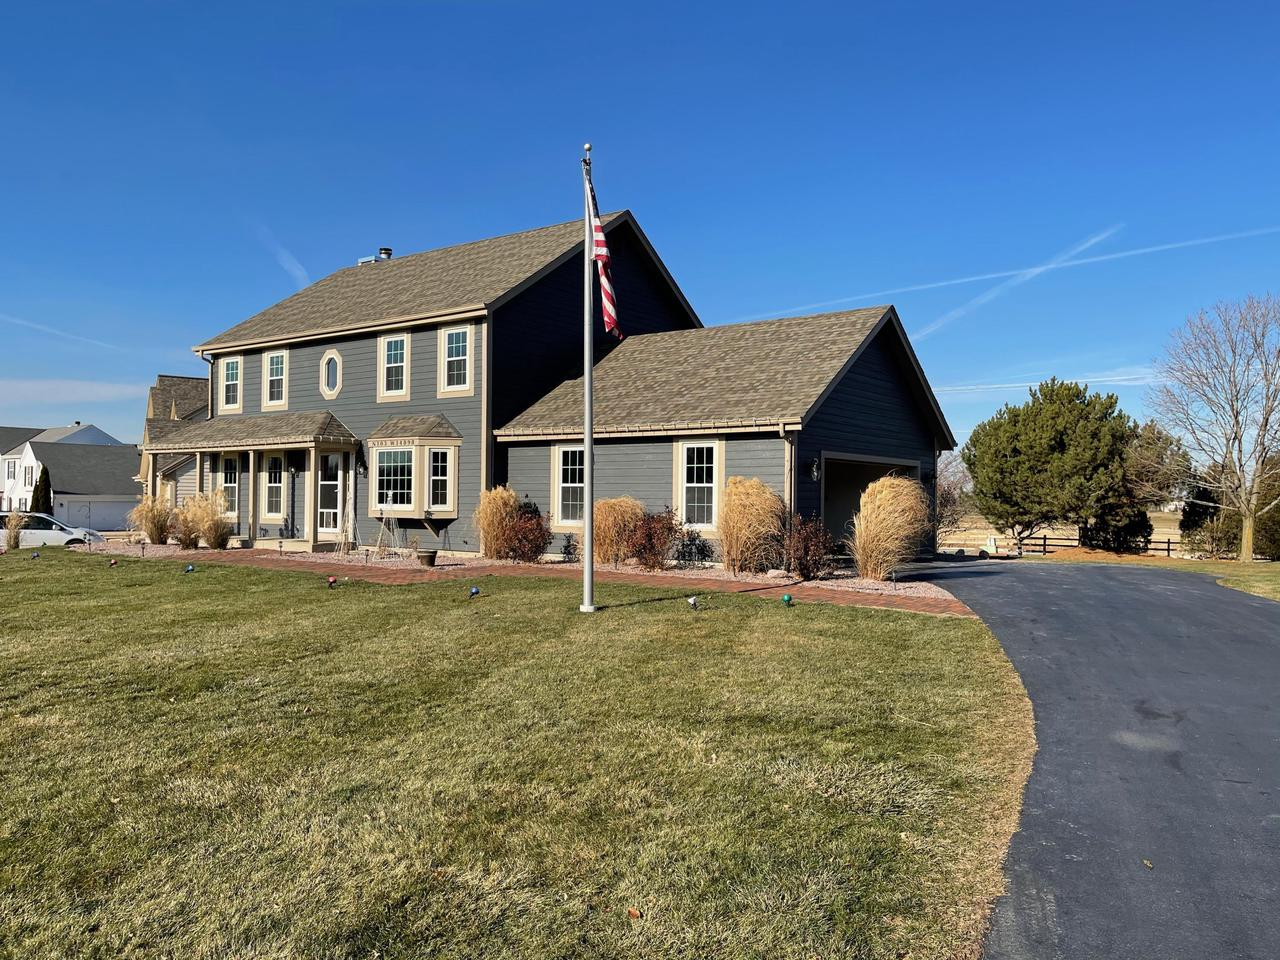 Quality built 4 bedroom, 2.5 bath home in desirable Windsong neighborhood, with acres of common green-space, walking trails, ponds and play space. Situated on just under 1/2 acre, this charming colonial offers many recent updates including all new LP Smartsiding, all new windows, new roof in 2015 and lots of new landscaping! Main level features a formal dining room, office/den or playroom, large living room has a gas fireplace with custom stone surround and a great kitchen with dinette and patio doors leading to an expansive patio and beautiful backyard. Upper level offers all four spacious bedrooms, master has a nice walk-in closet and spa bath. Lower level prime for finishing to add another bath plus a rec room and/or gym area. Finished 2.5 car attached garage.